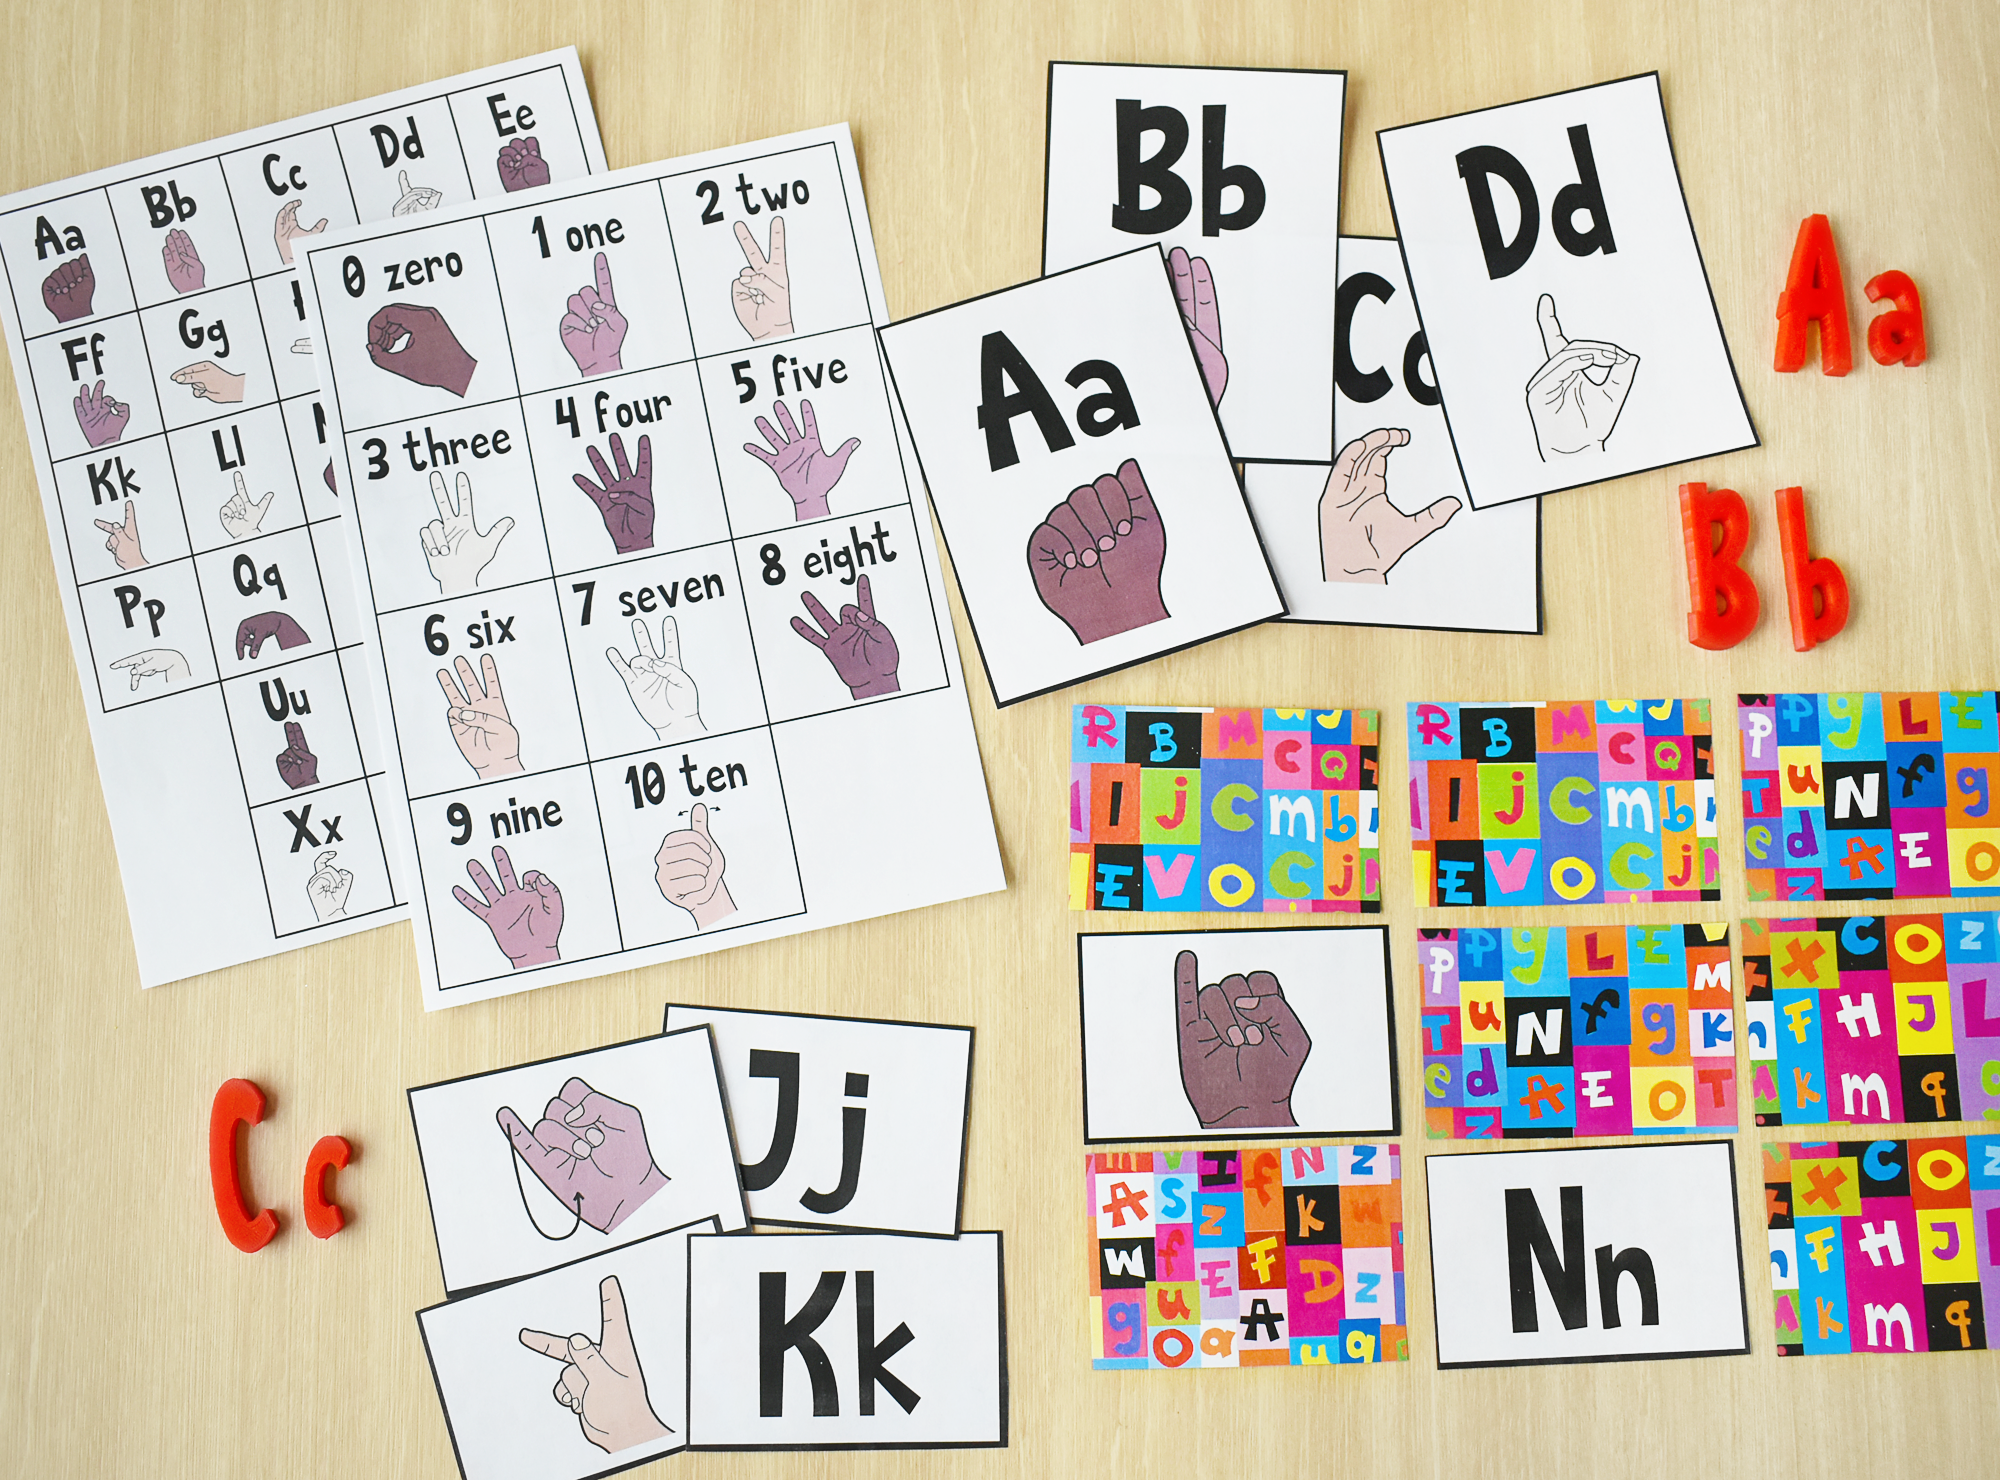 American Sign Language + Preschool Blended Learning Course